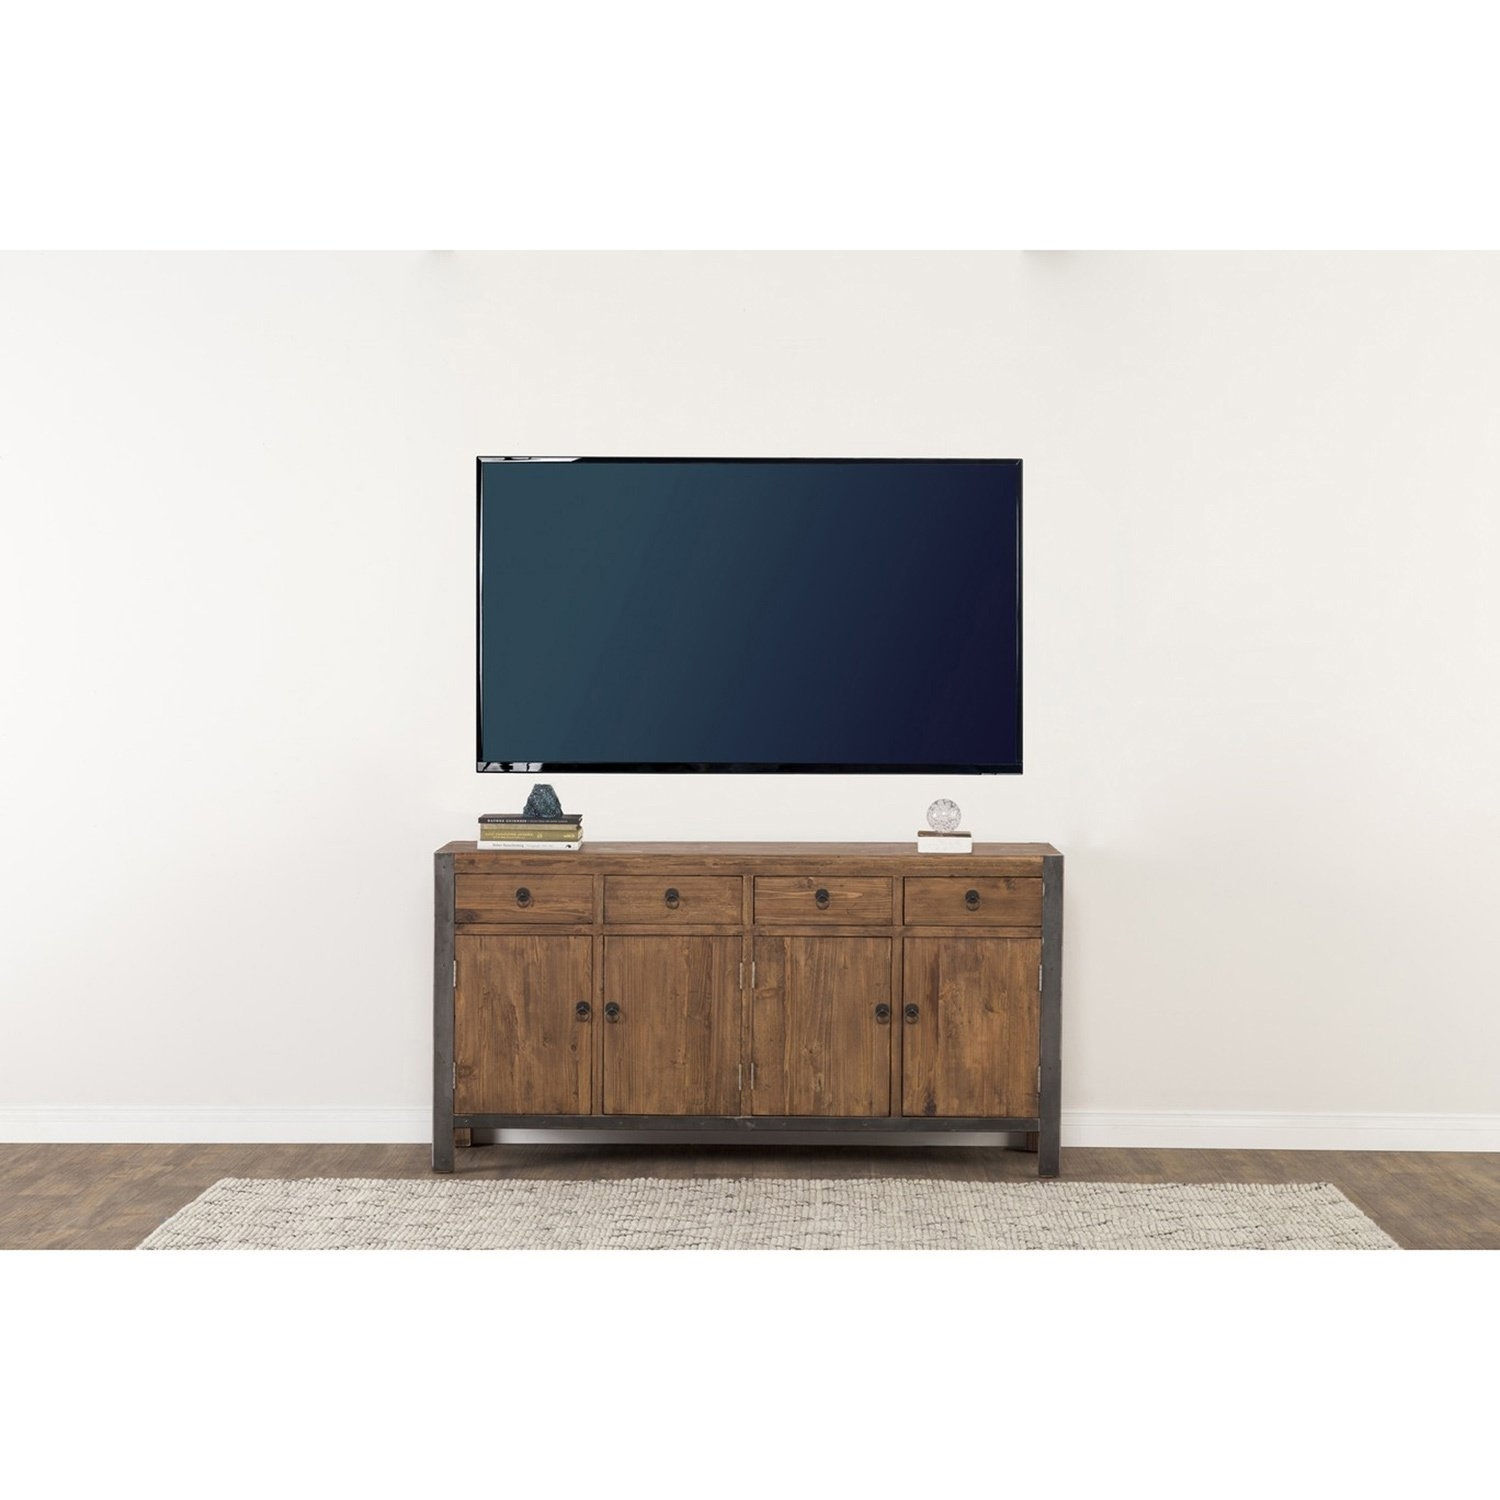 Shop Willow Reclaimed Wood And Iron 70-Inch Buffetkosas Home regarding Reclaimed Elm 71 Inch Sideboards (Image 23 of 30)